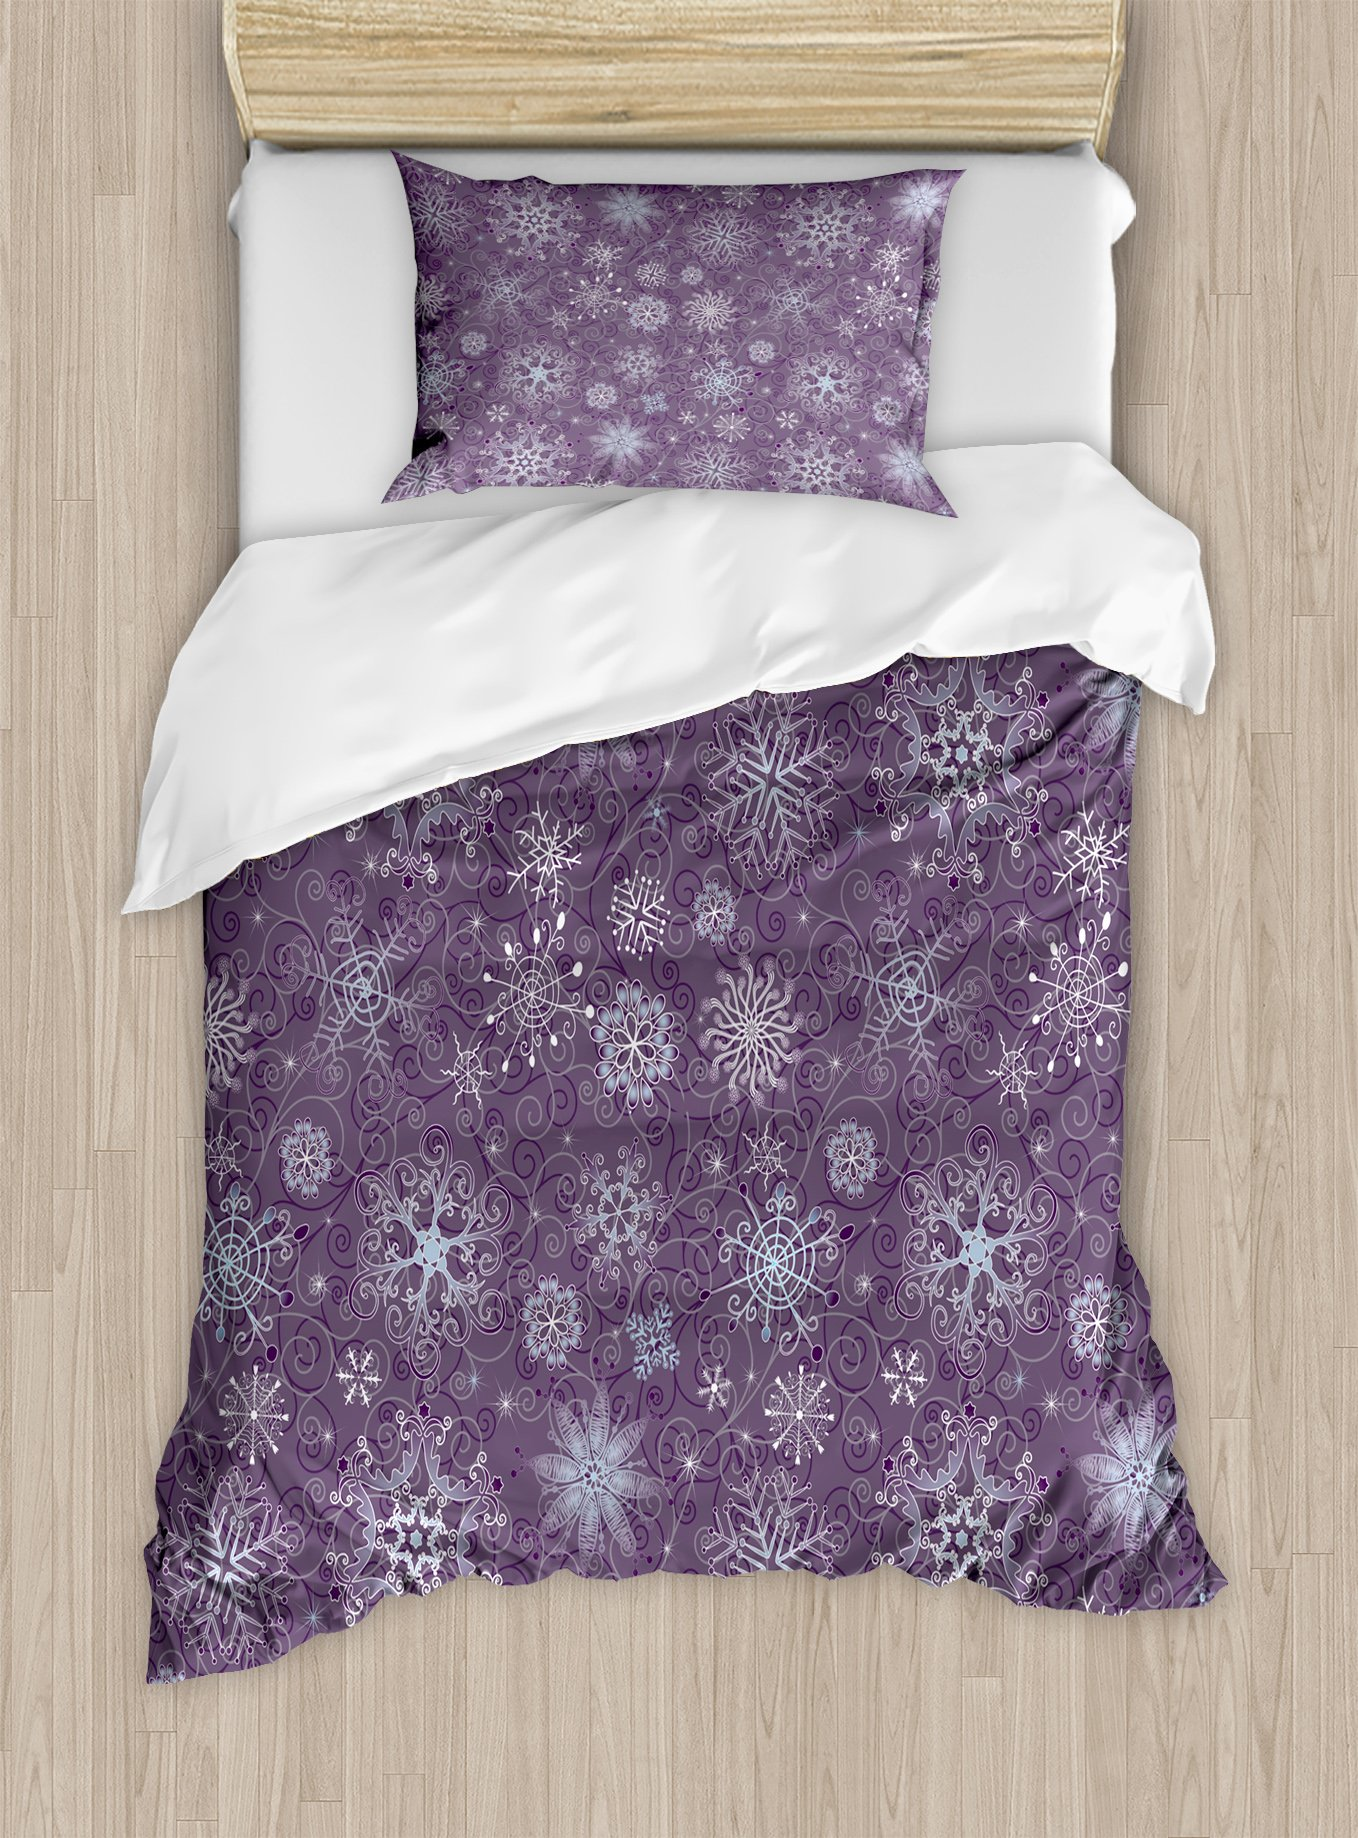 Ambesonne Eggplant Duvet Cover Set Twin Size, Christmas Inspired Cute Flowers Snowflakes and Swirls in a Violet Delicate Environment, Decorative 2 Piece Bedding Set with 1 Pillow Sham, Violet